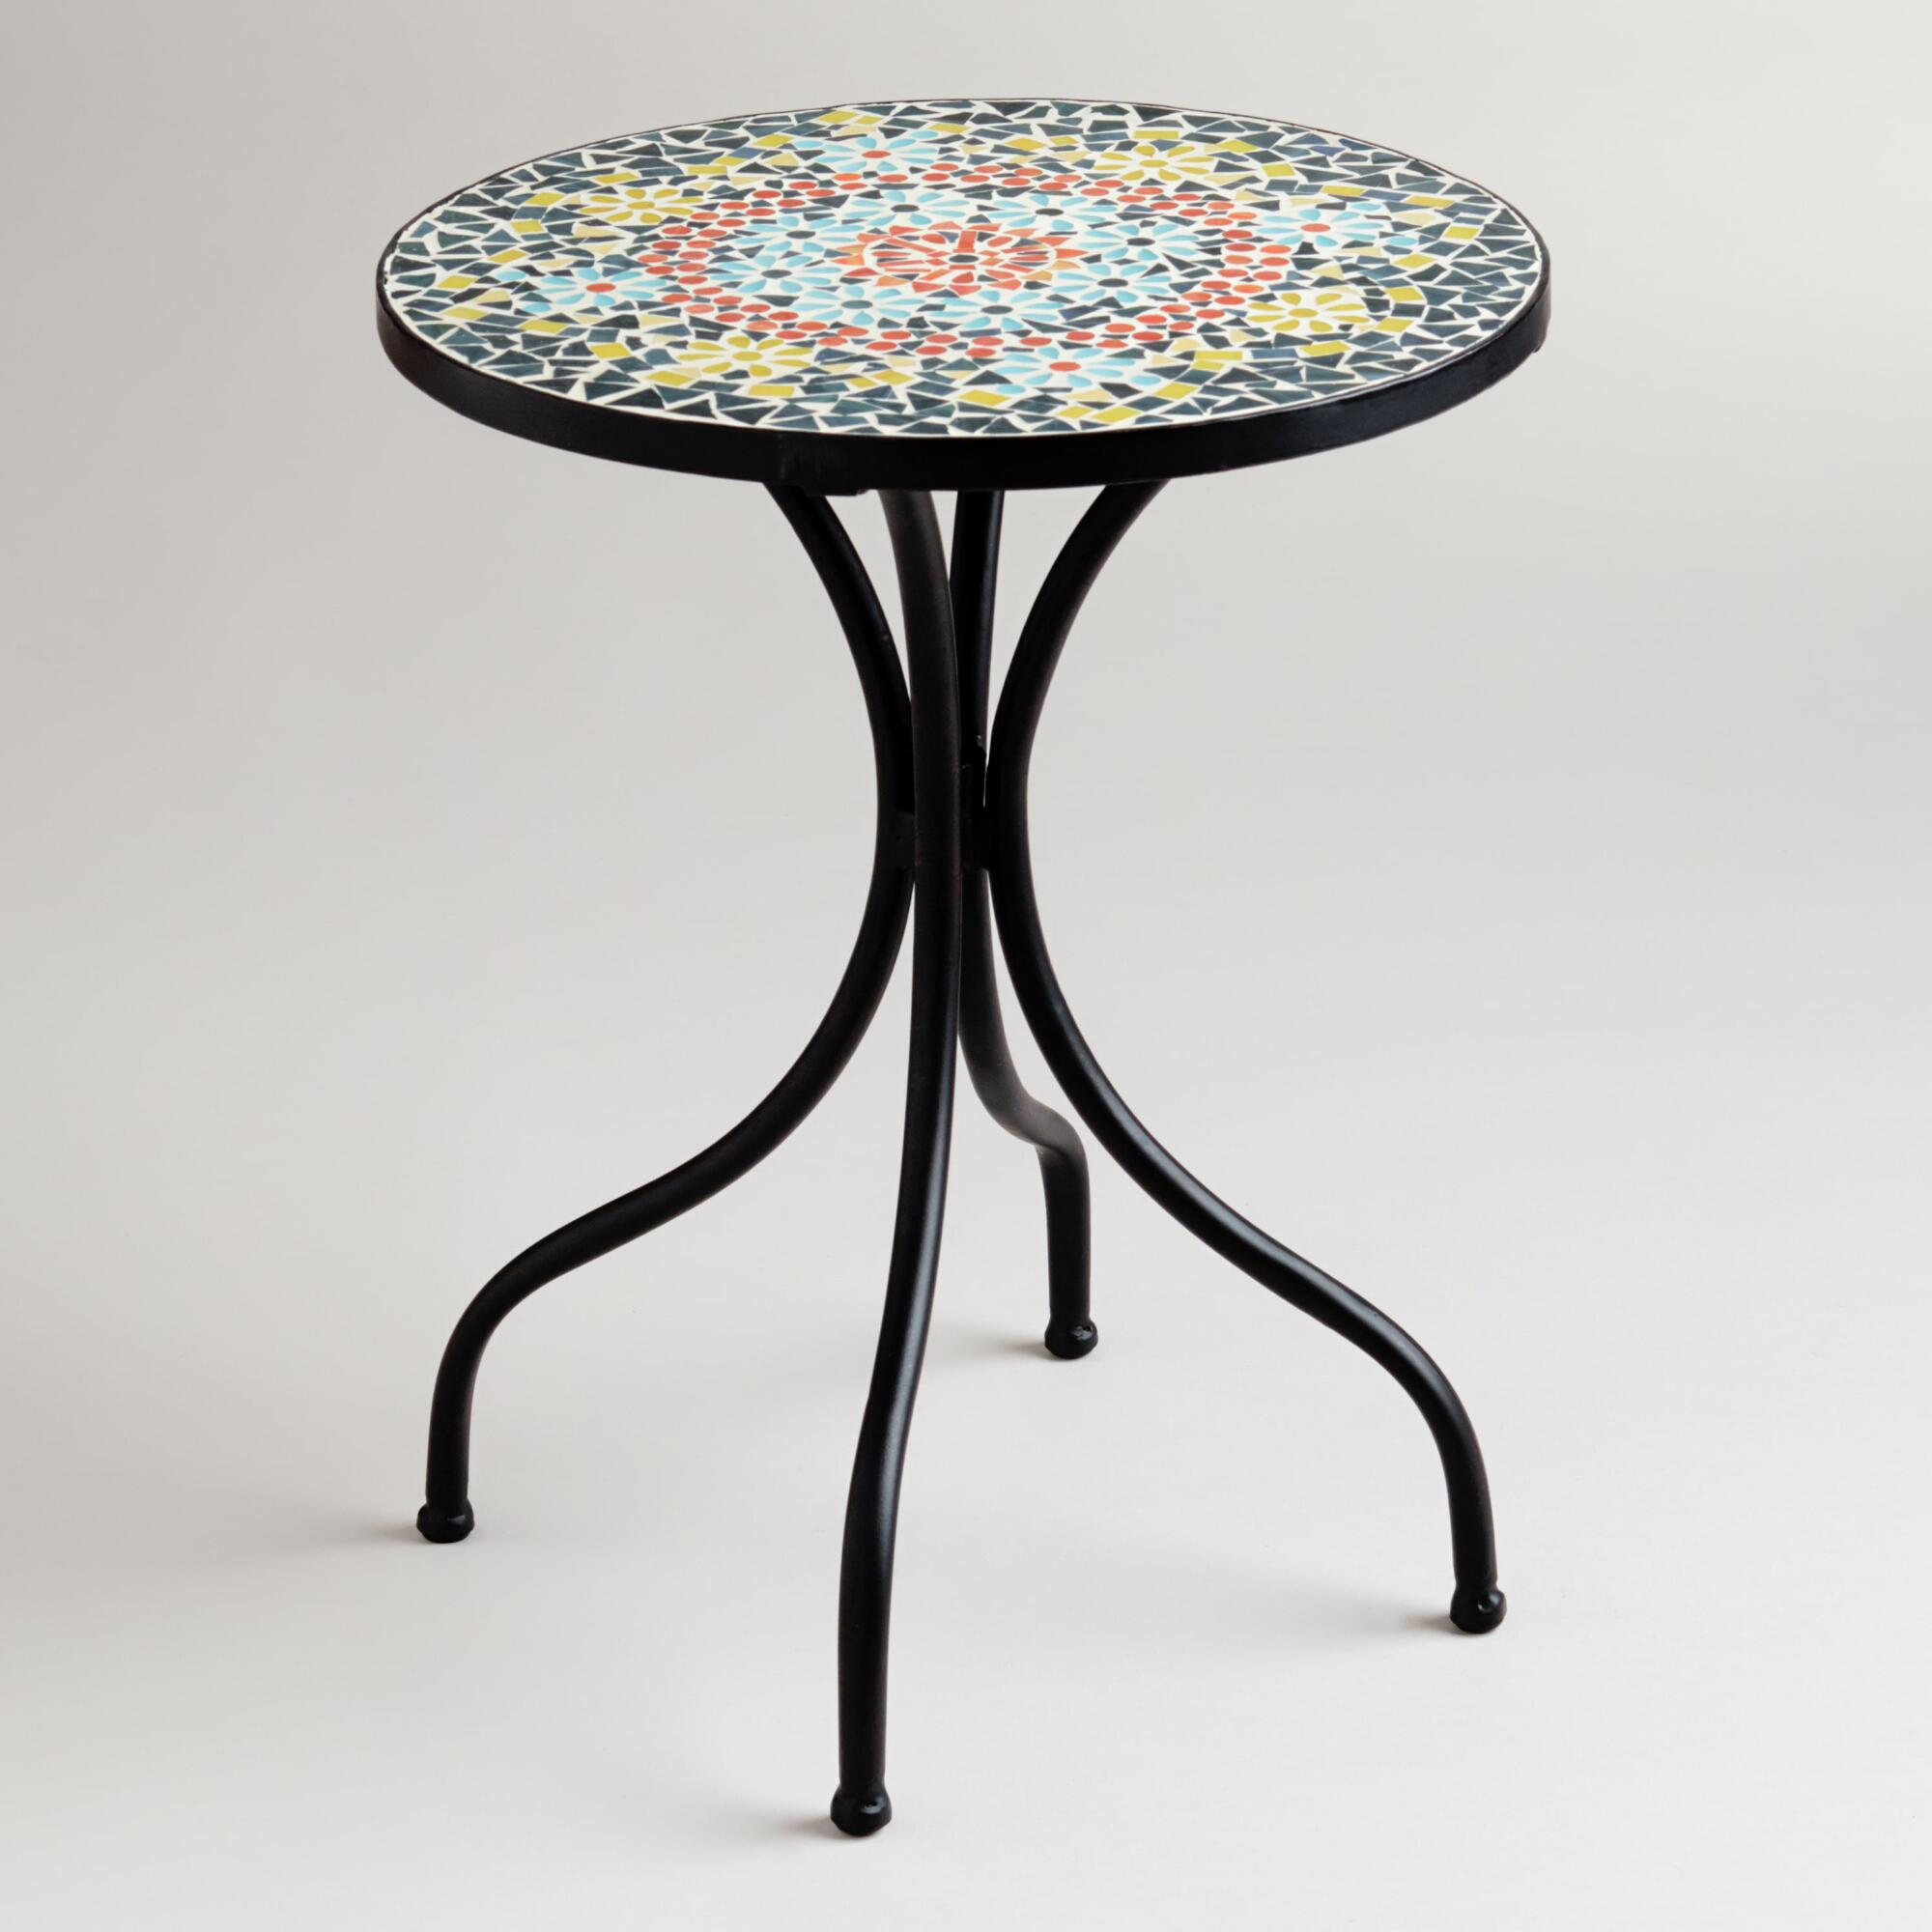 mosaic table for attractive centre attention the new way home decor accent outdoor stone bar stools bunnings drum throne parts colourful coffee height patio furniture narrow sofas